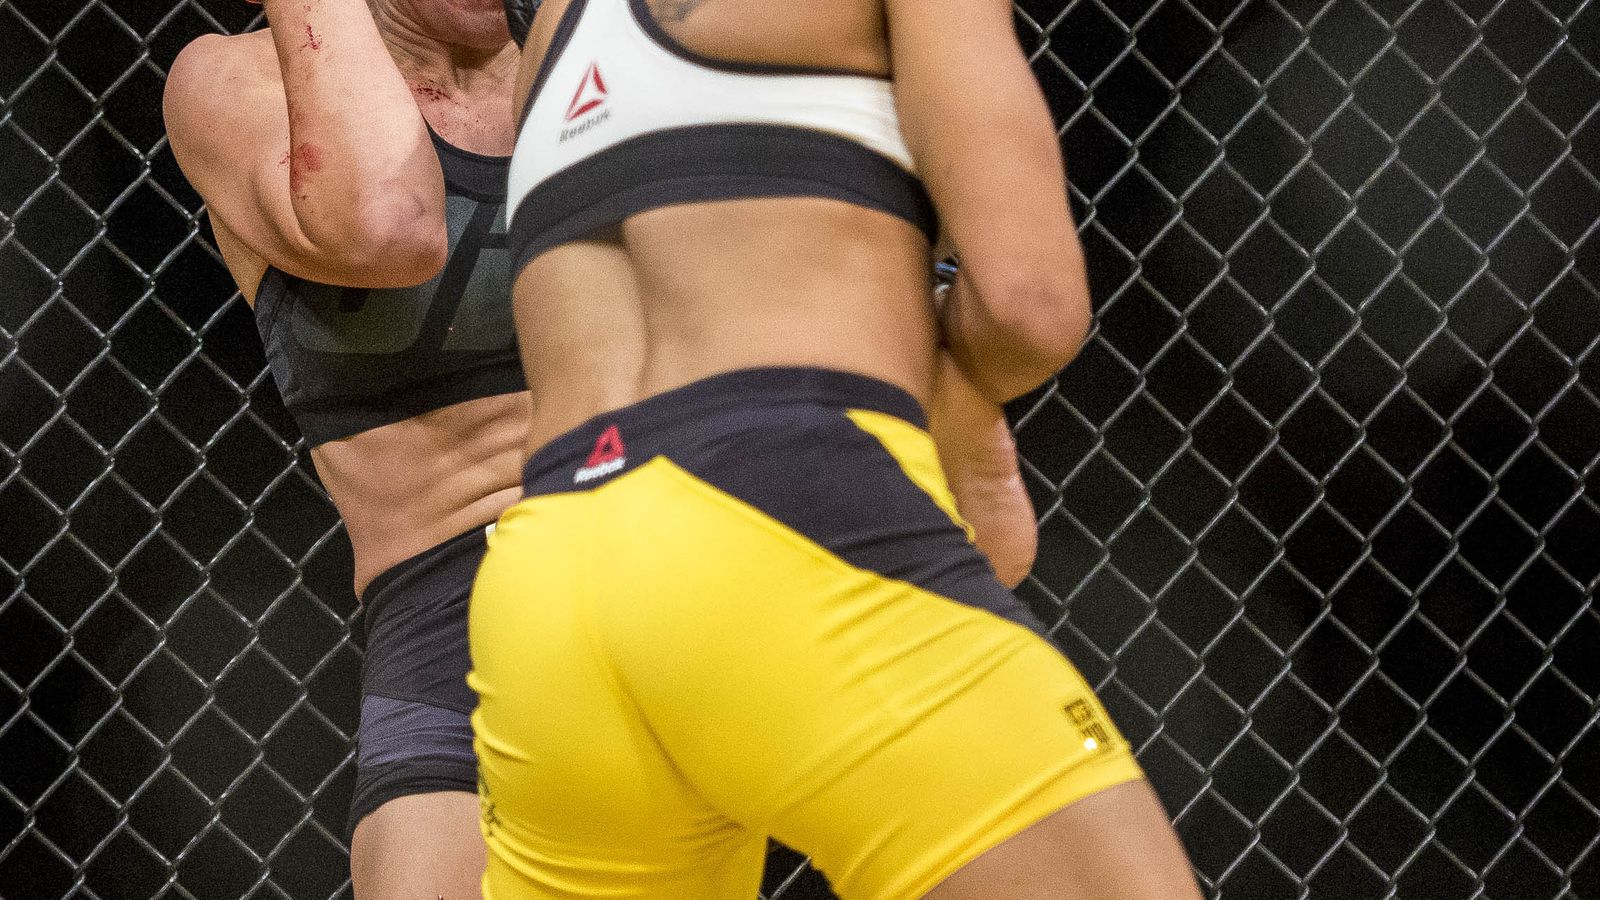 UFC bantamweight title possible fights: Ronda Rousey v